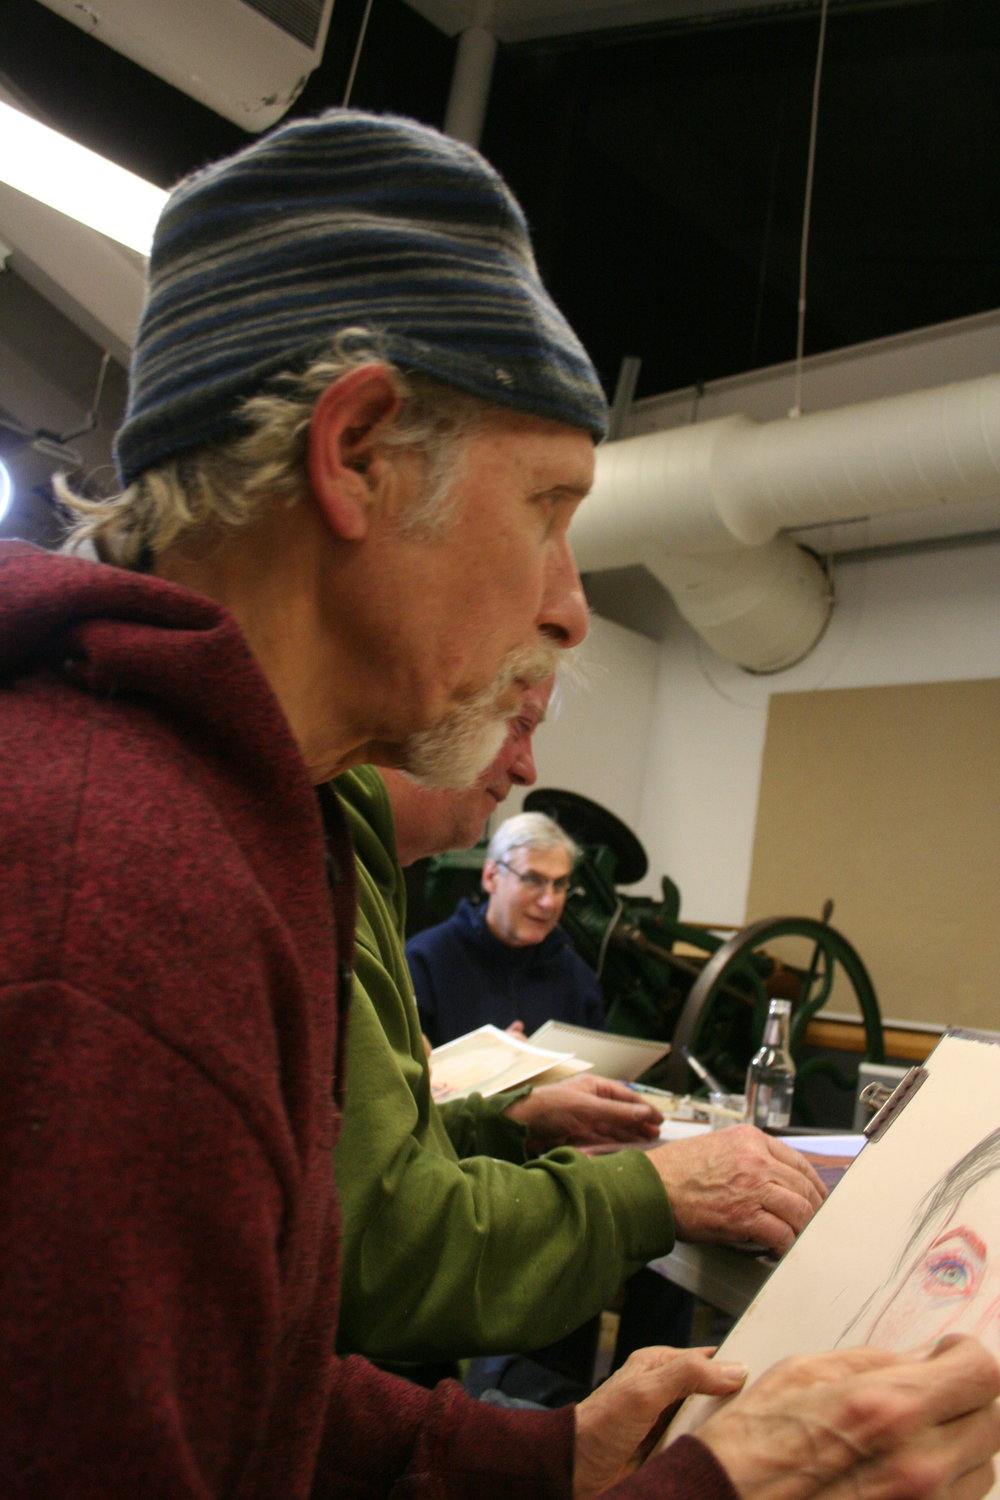 Larry Zuzik at work. Photo by Howard Collier.